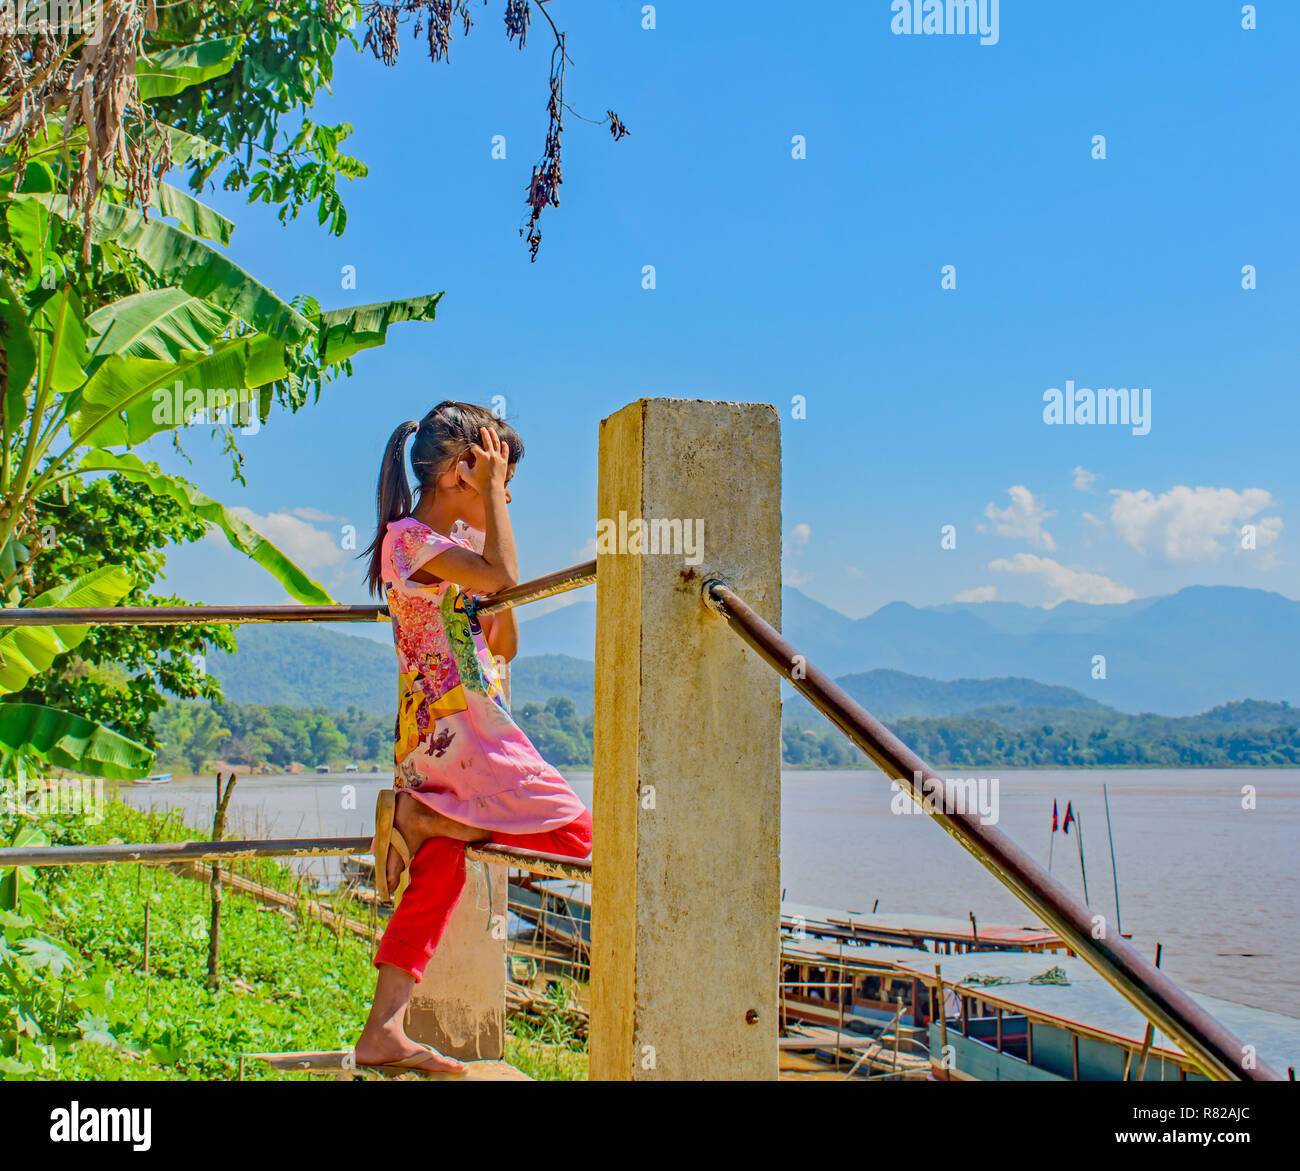 A small girl leaning on the railings by a village on the Mekong River looks out and thinks 'One day my boat will come' - Stock Image